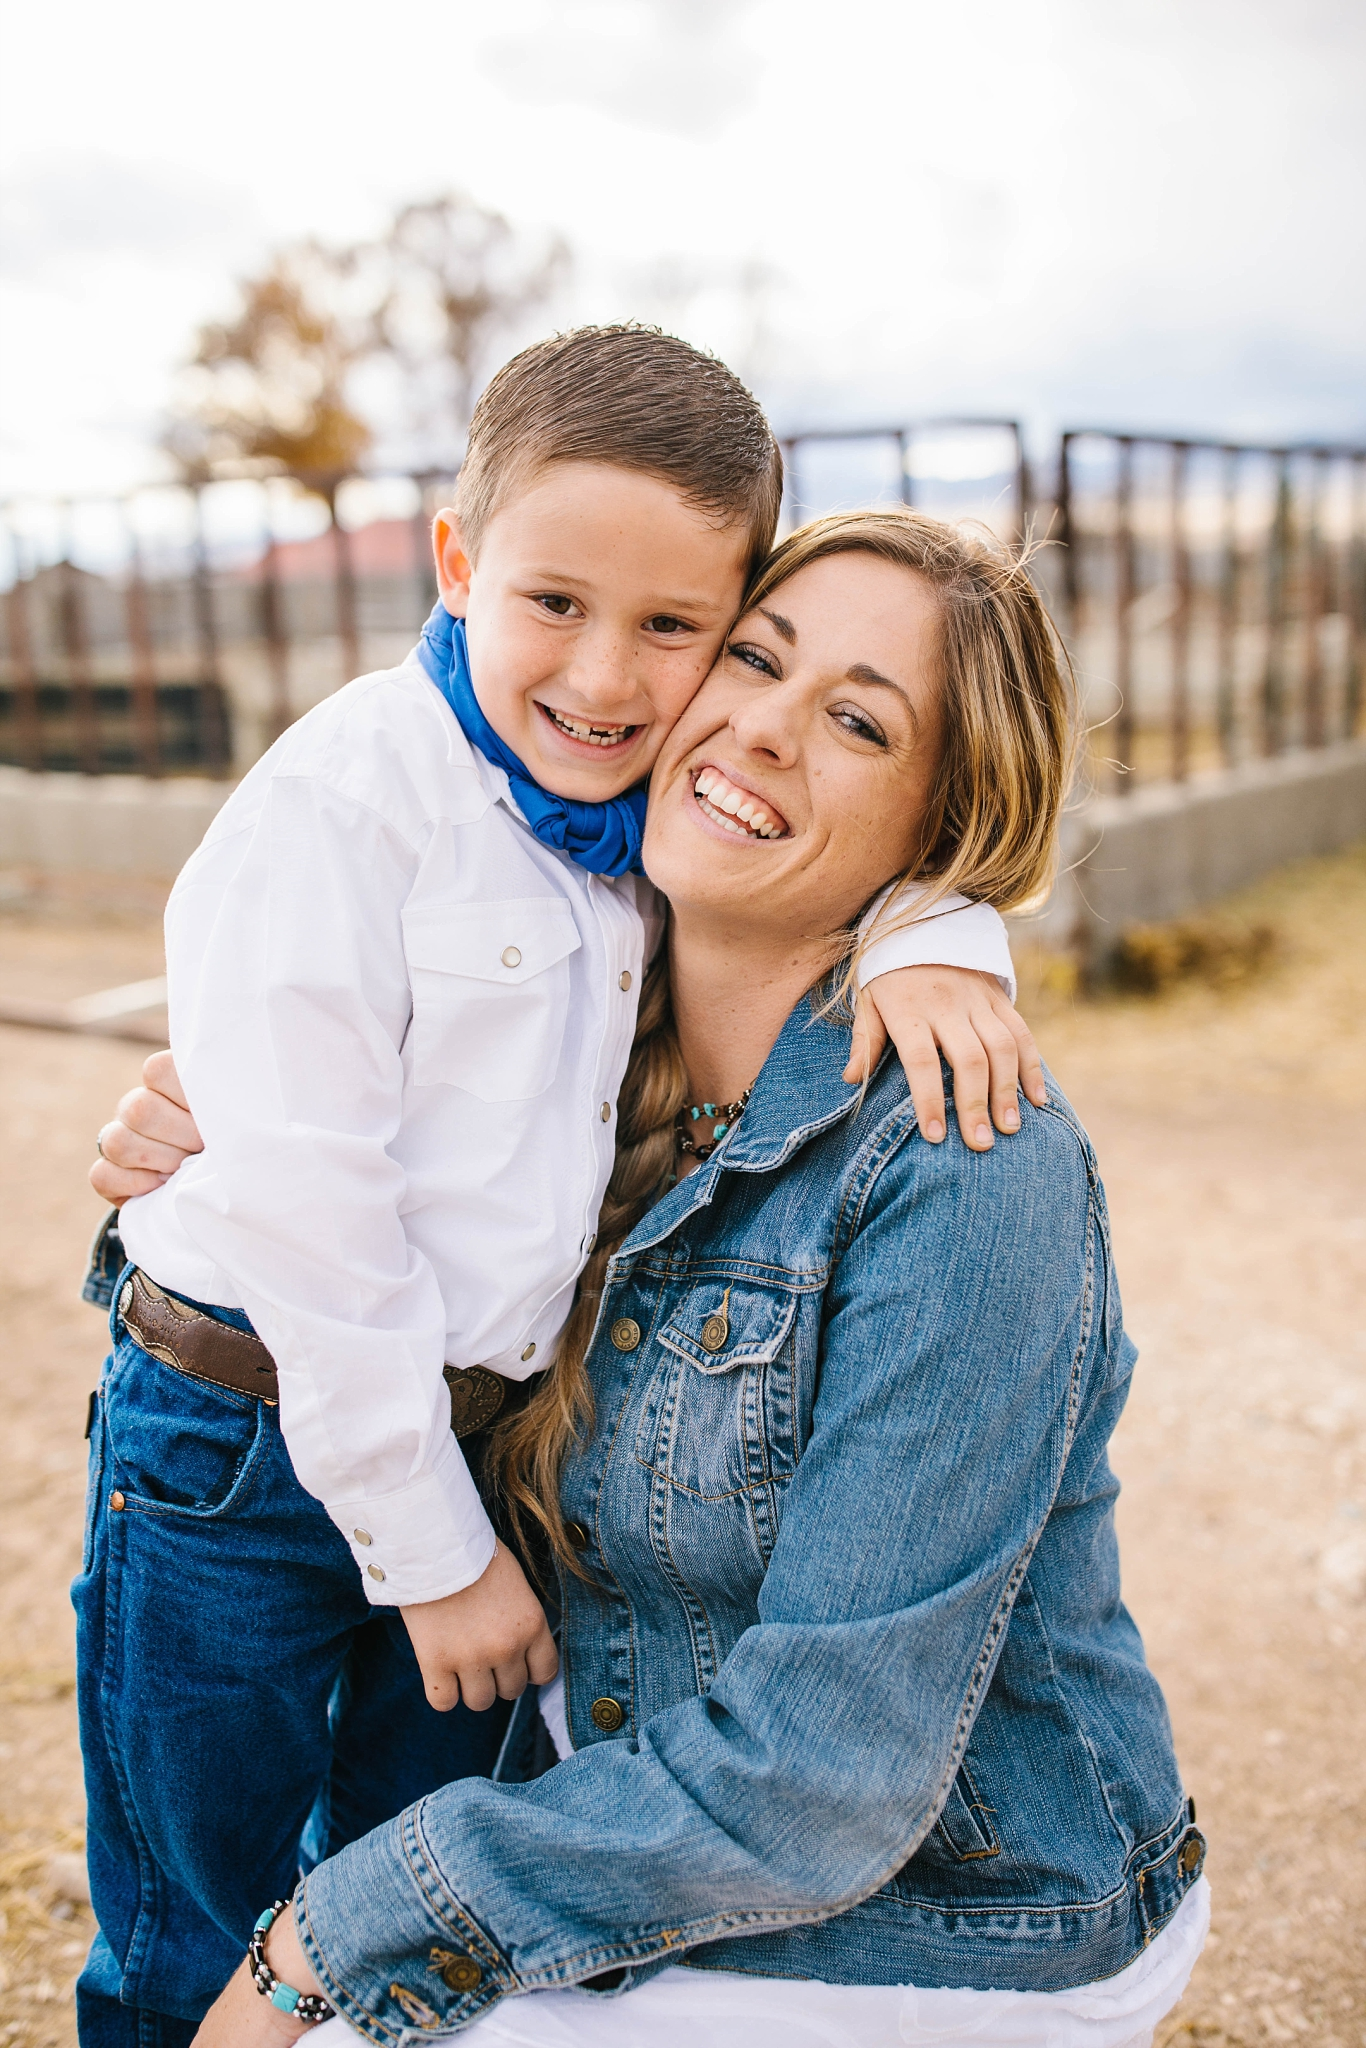 Lister-54_Lizzie-B-Imagery-Utah-Family-Photographer-Lifestyle-Photography-Salt-Lake-City-Park-City-Utah-County-Farm-Family-Session.jpg